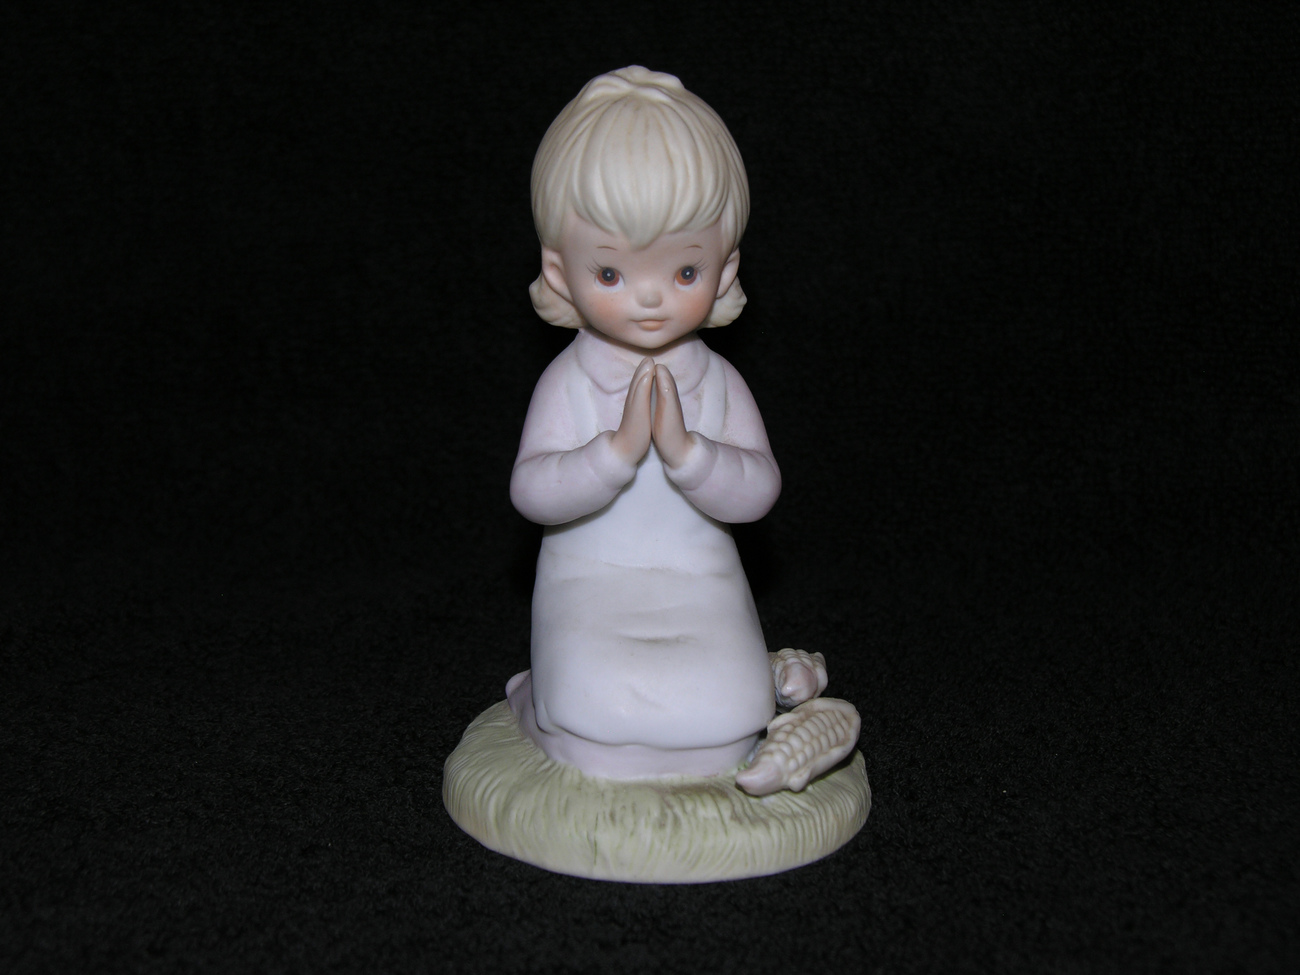 Vintage Lefton Bisque Figurine Religious Hand Painted